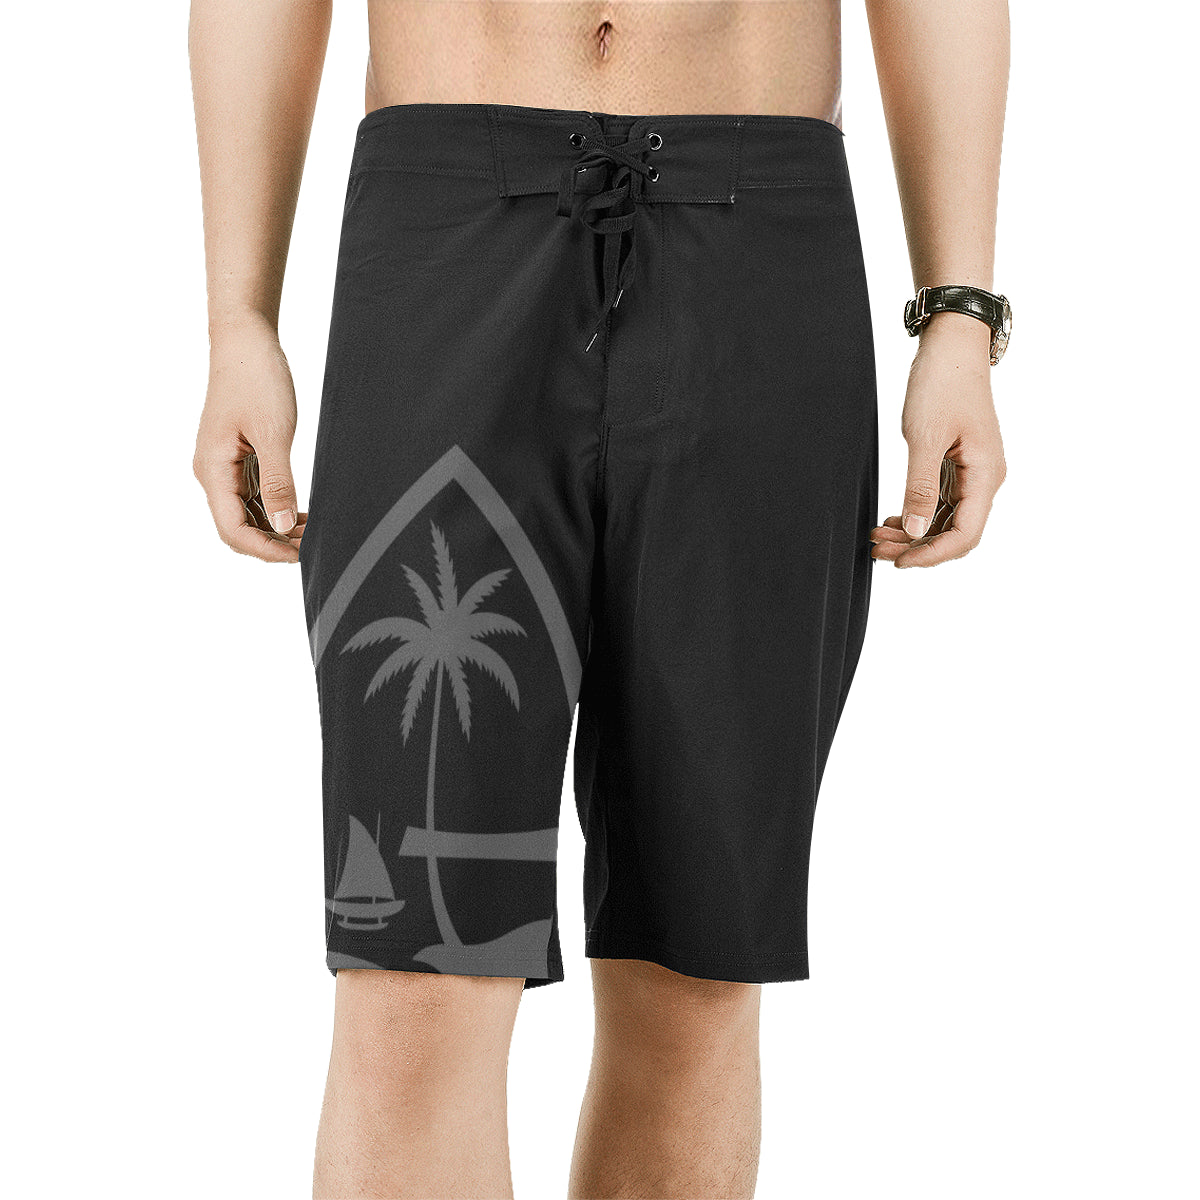 Guam Seal Mens Black All Over Print Board Shorts